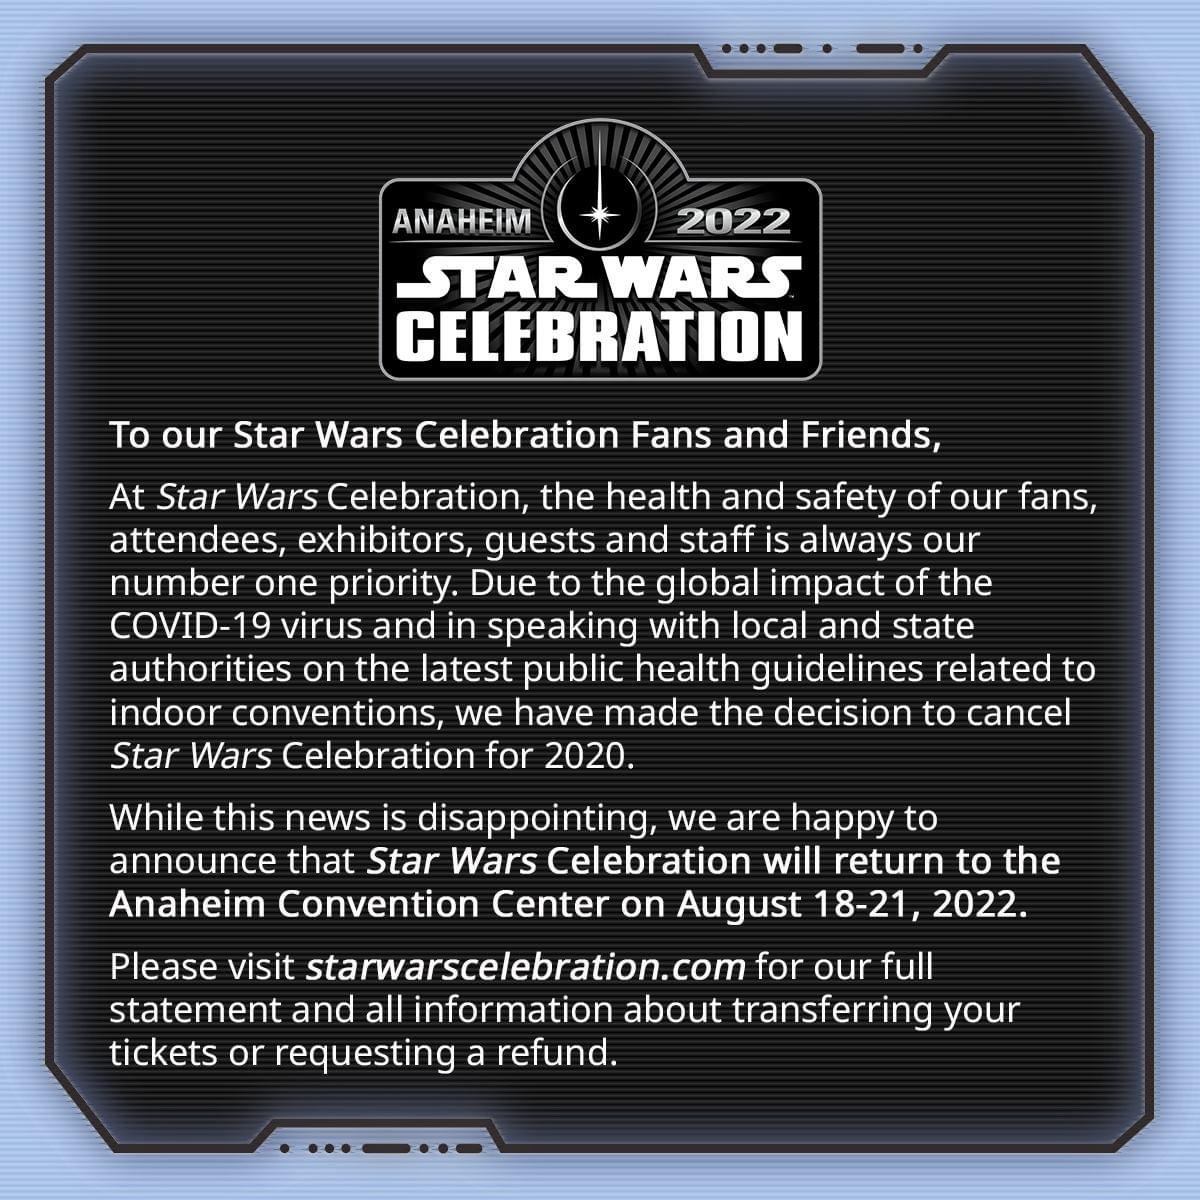 Update from Star Wars Celebration - Cancelled Until 2022 1